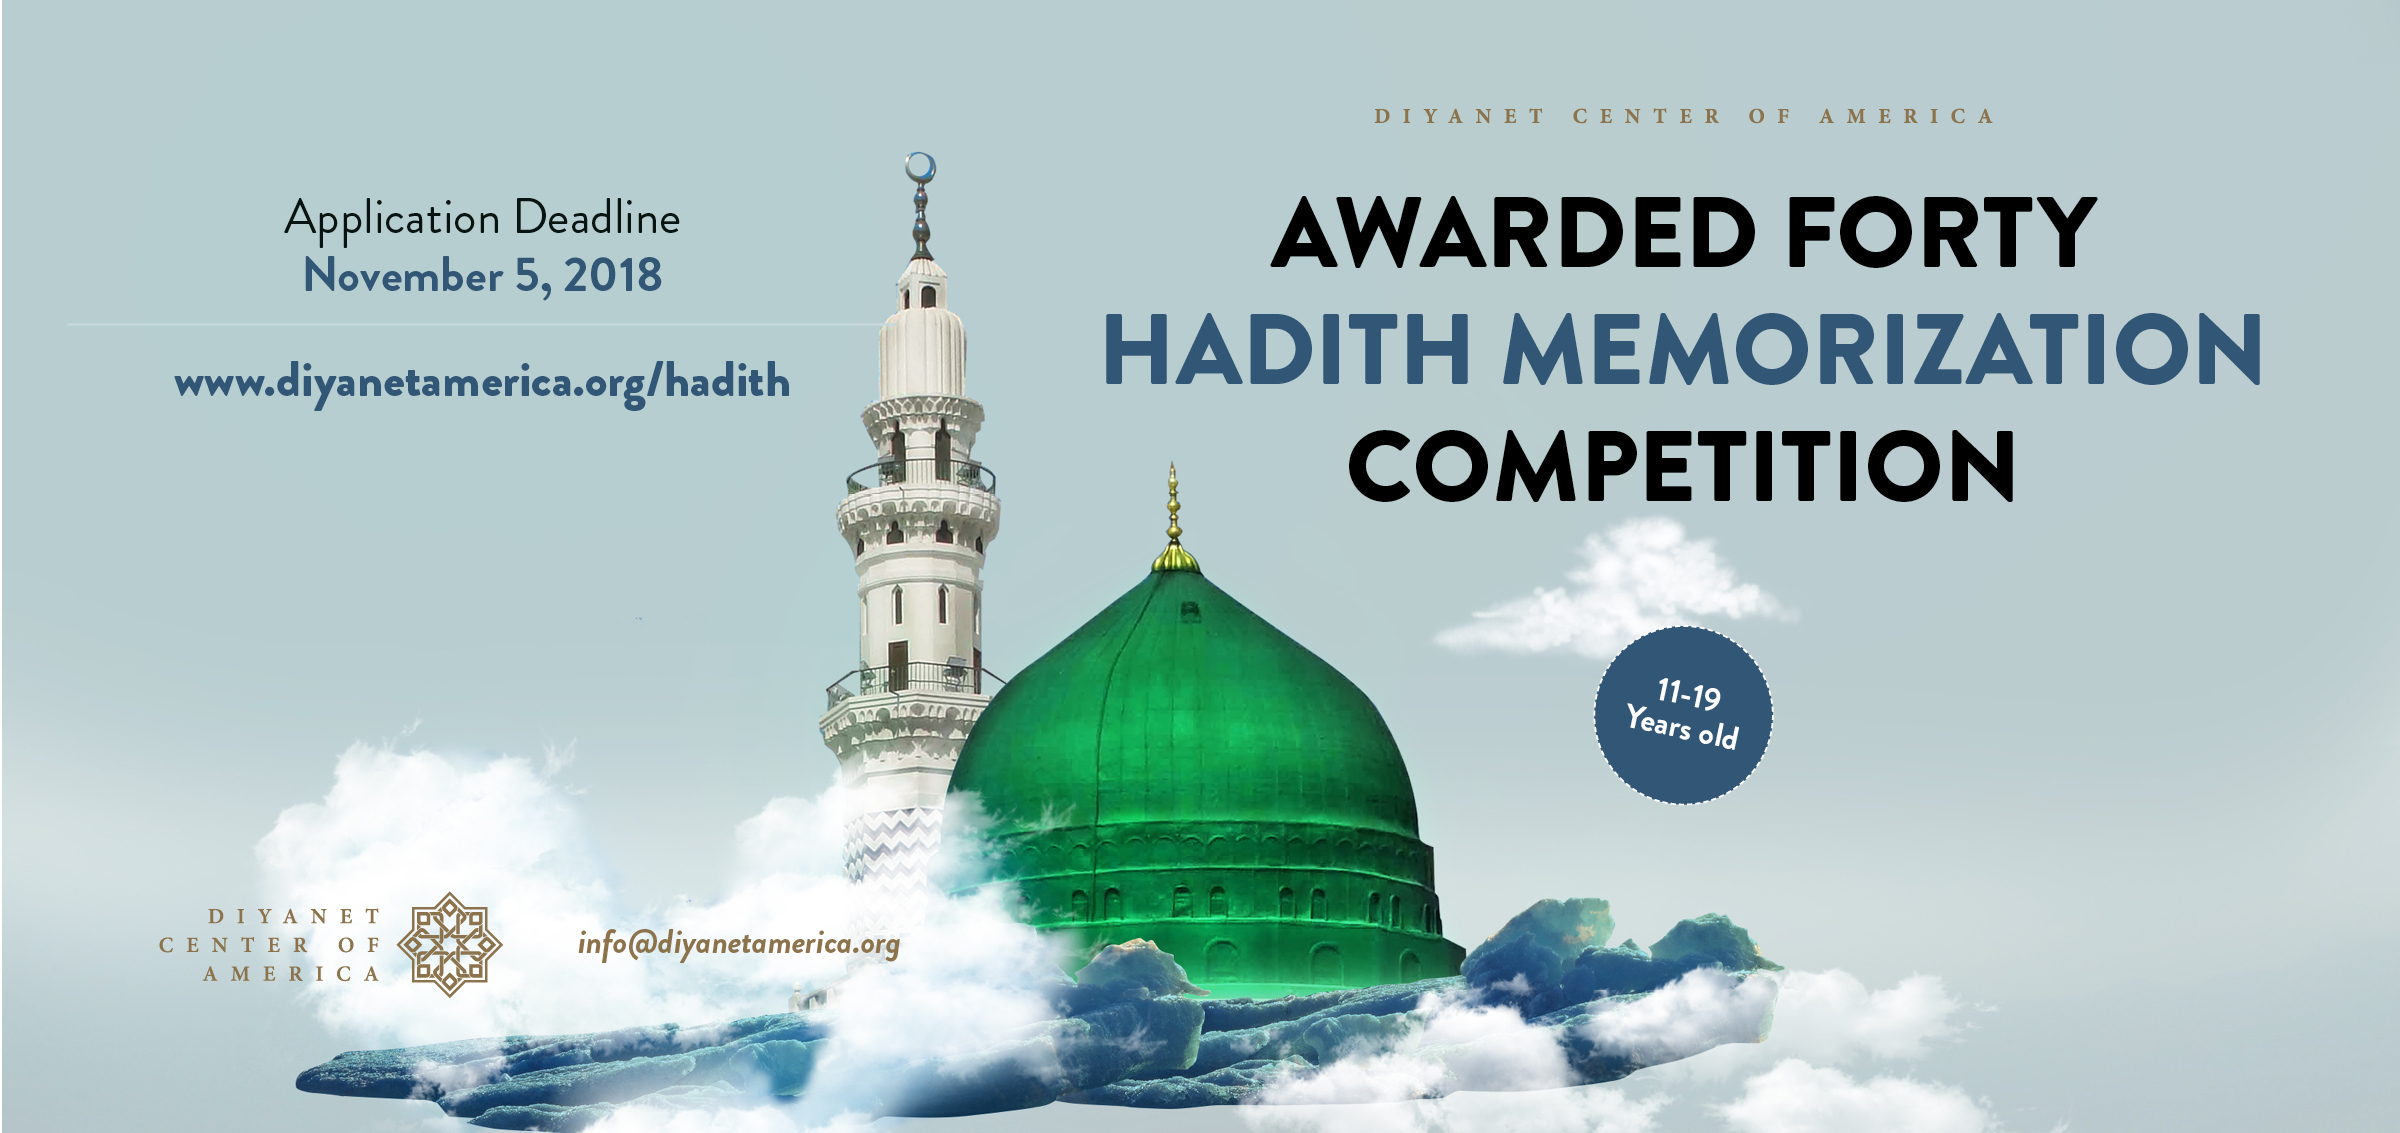 Awarded Forty Hadith Memorization Competition